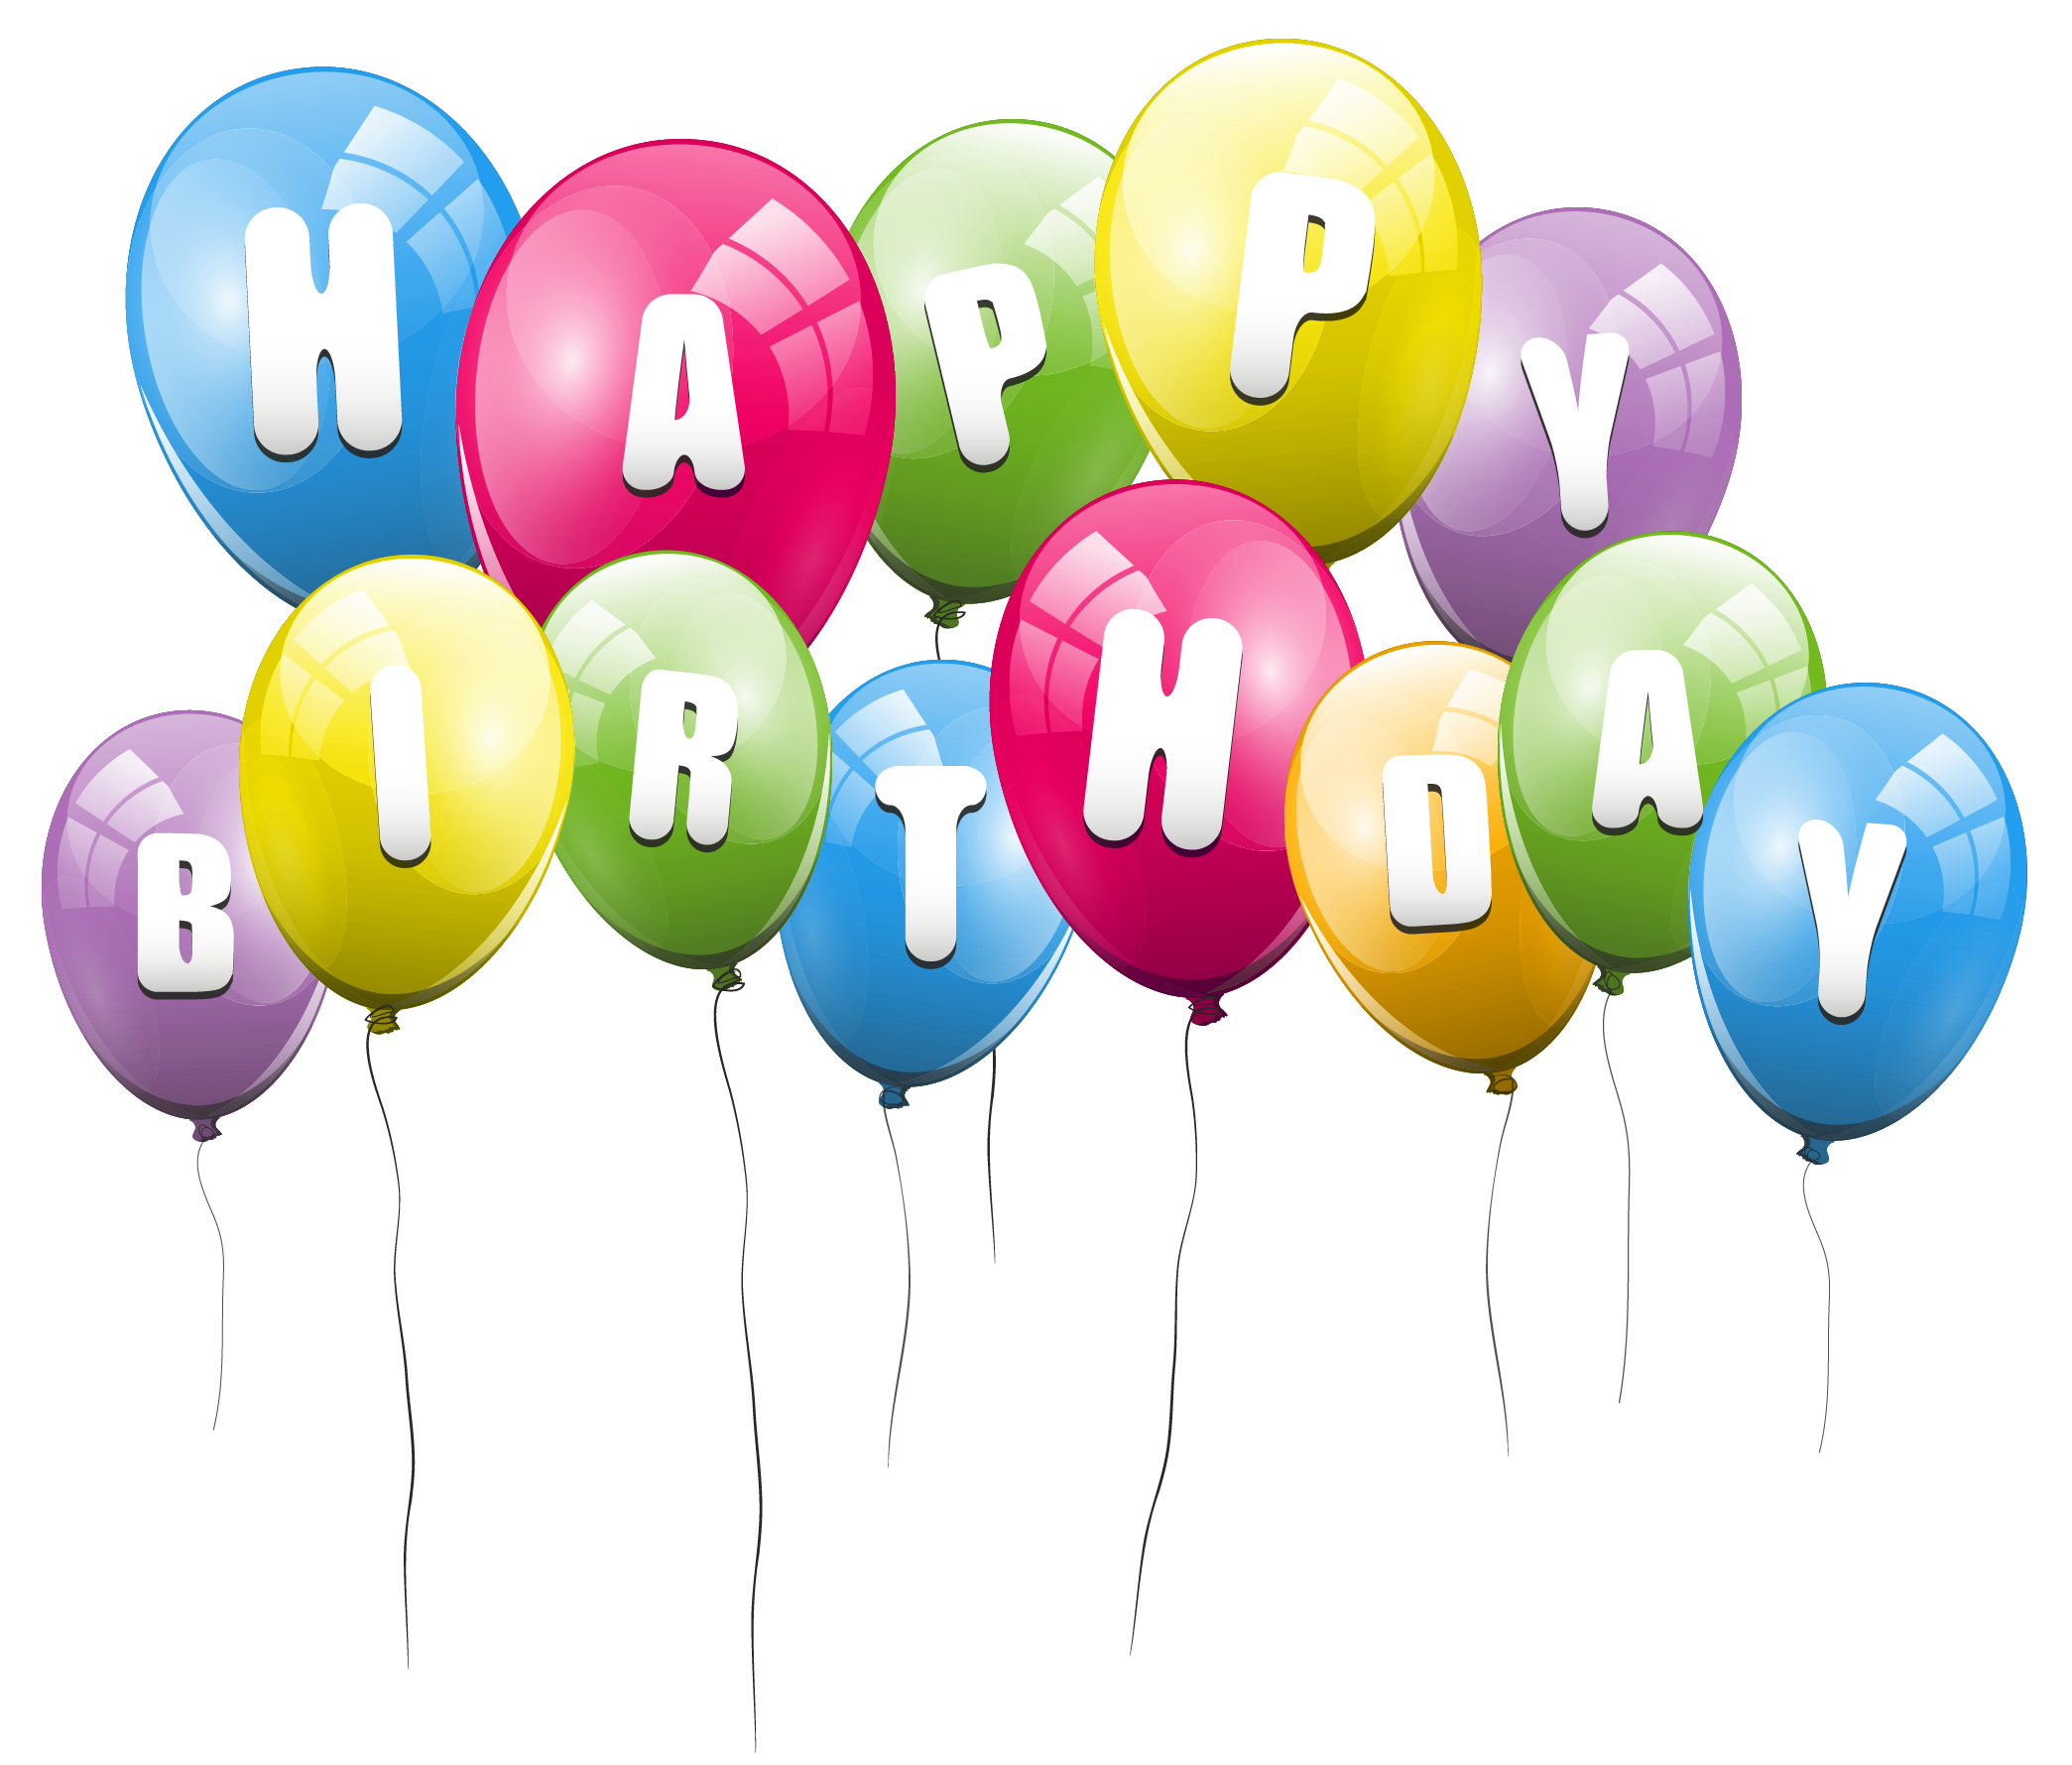 Transparent picture clipart gallery. Happy birthday balloons png clipart transparent download